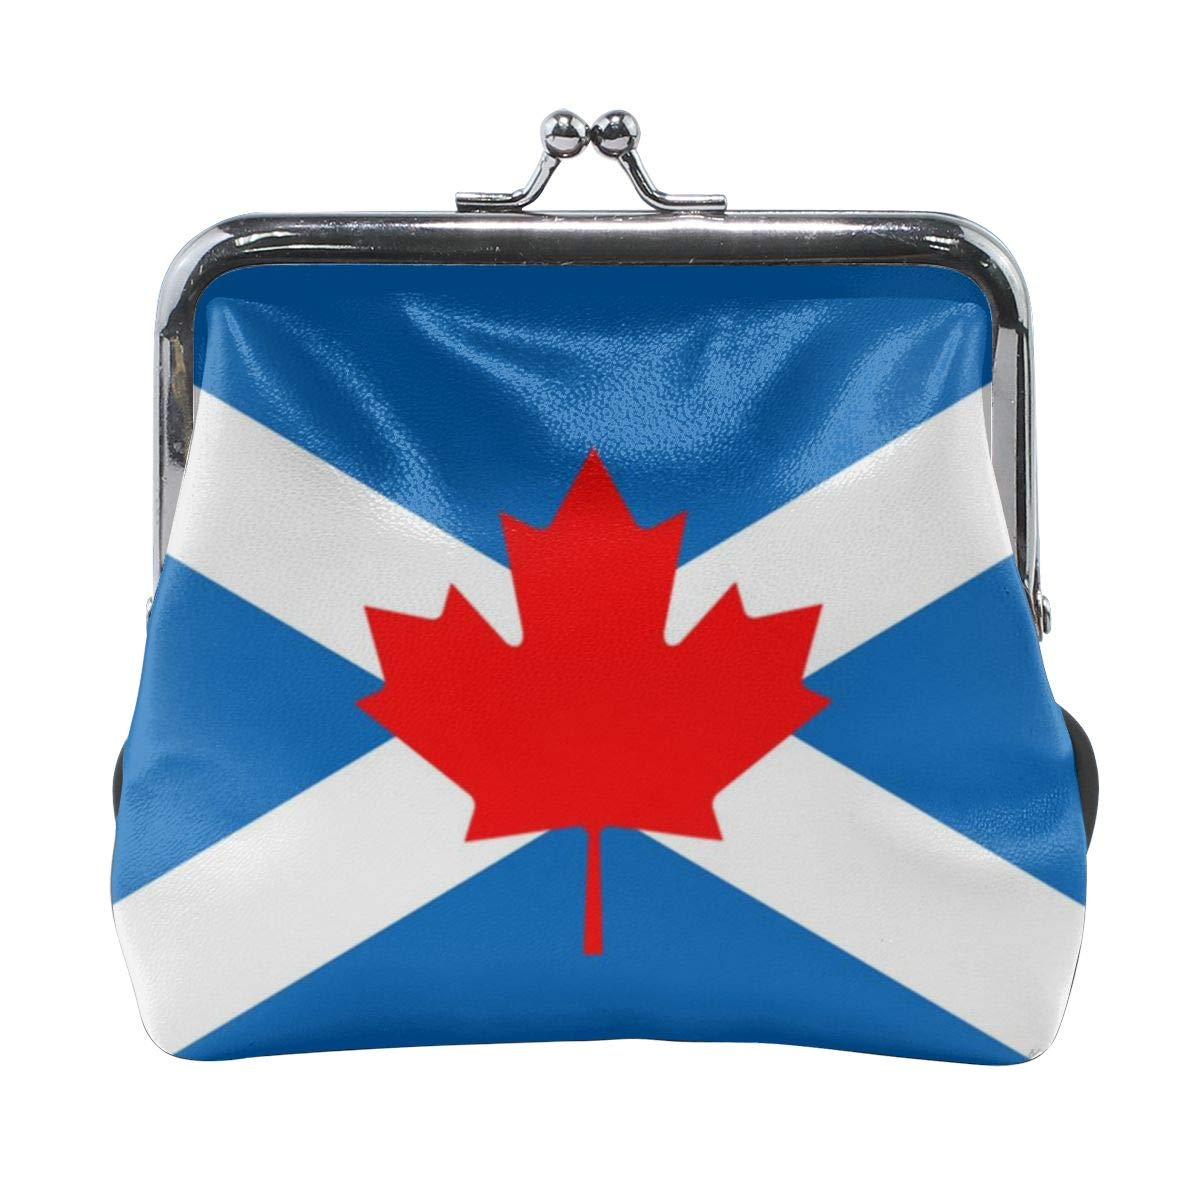 Flag Of Scottish Canadians Cute Buckle Coin Purses Buckle Buckle Change Purse Wallets